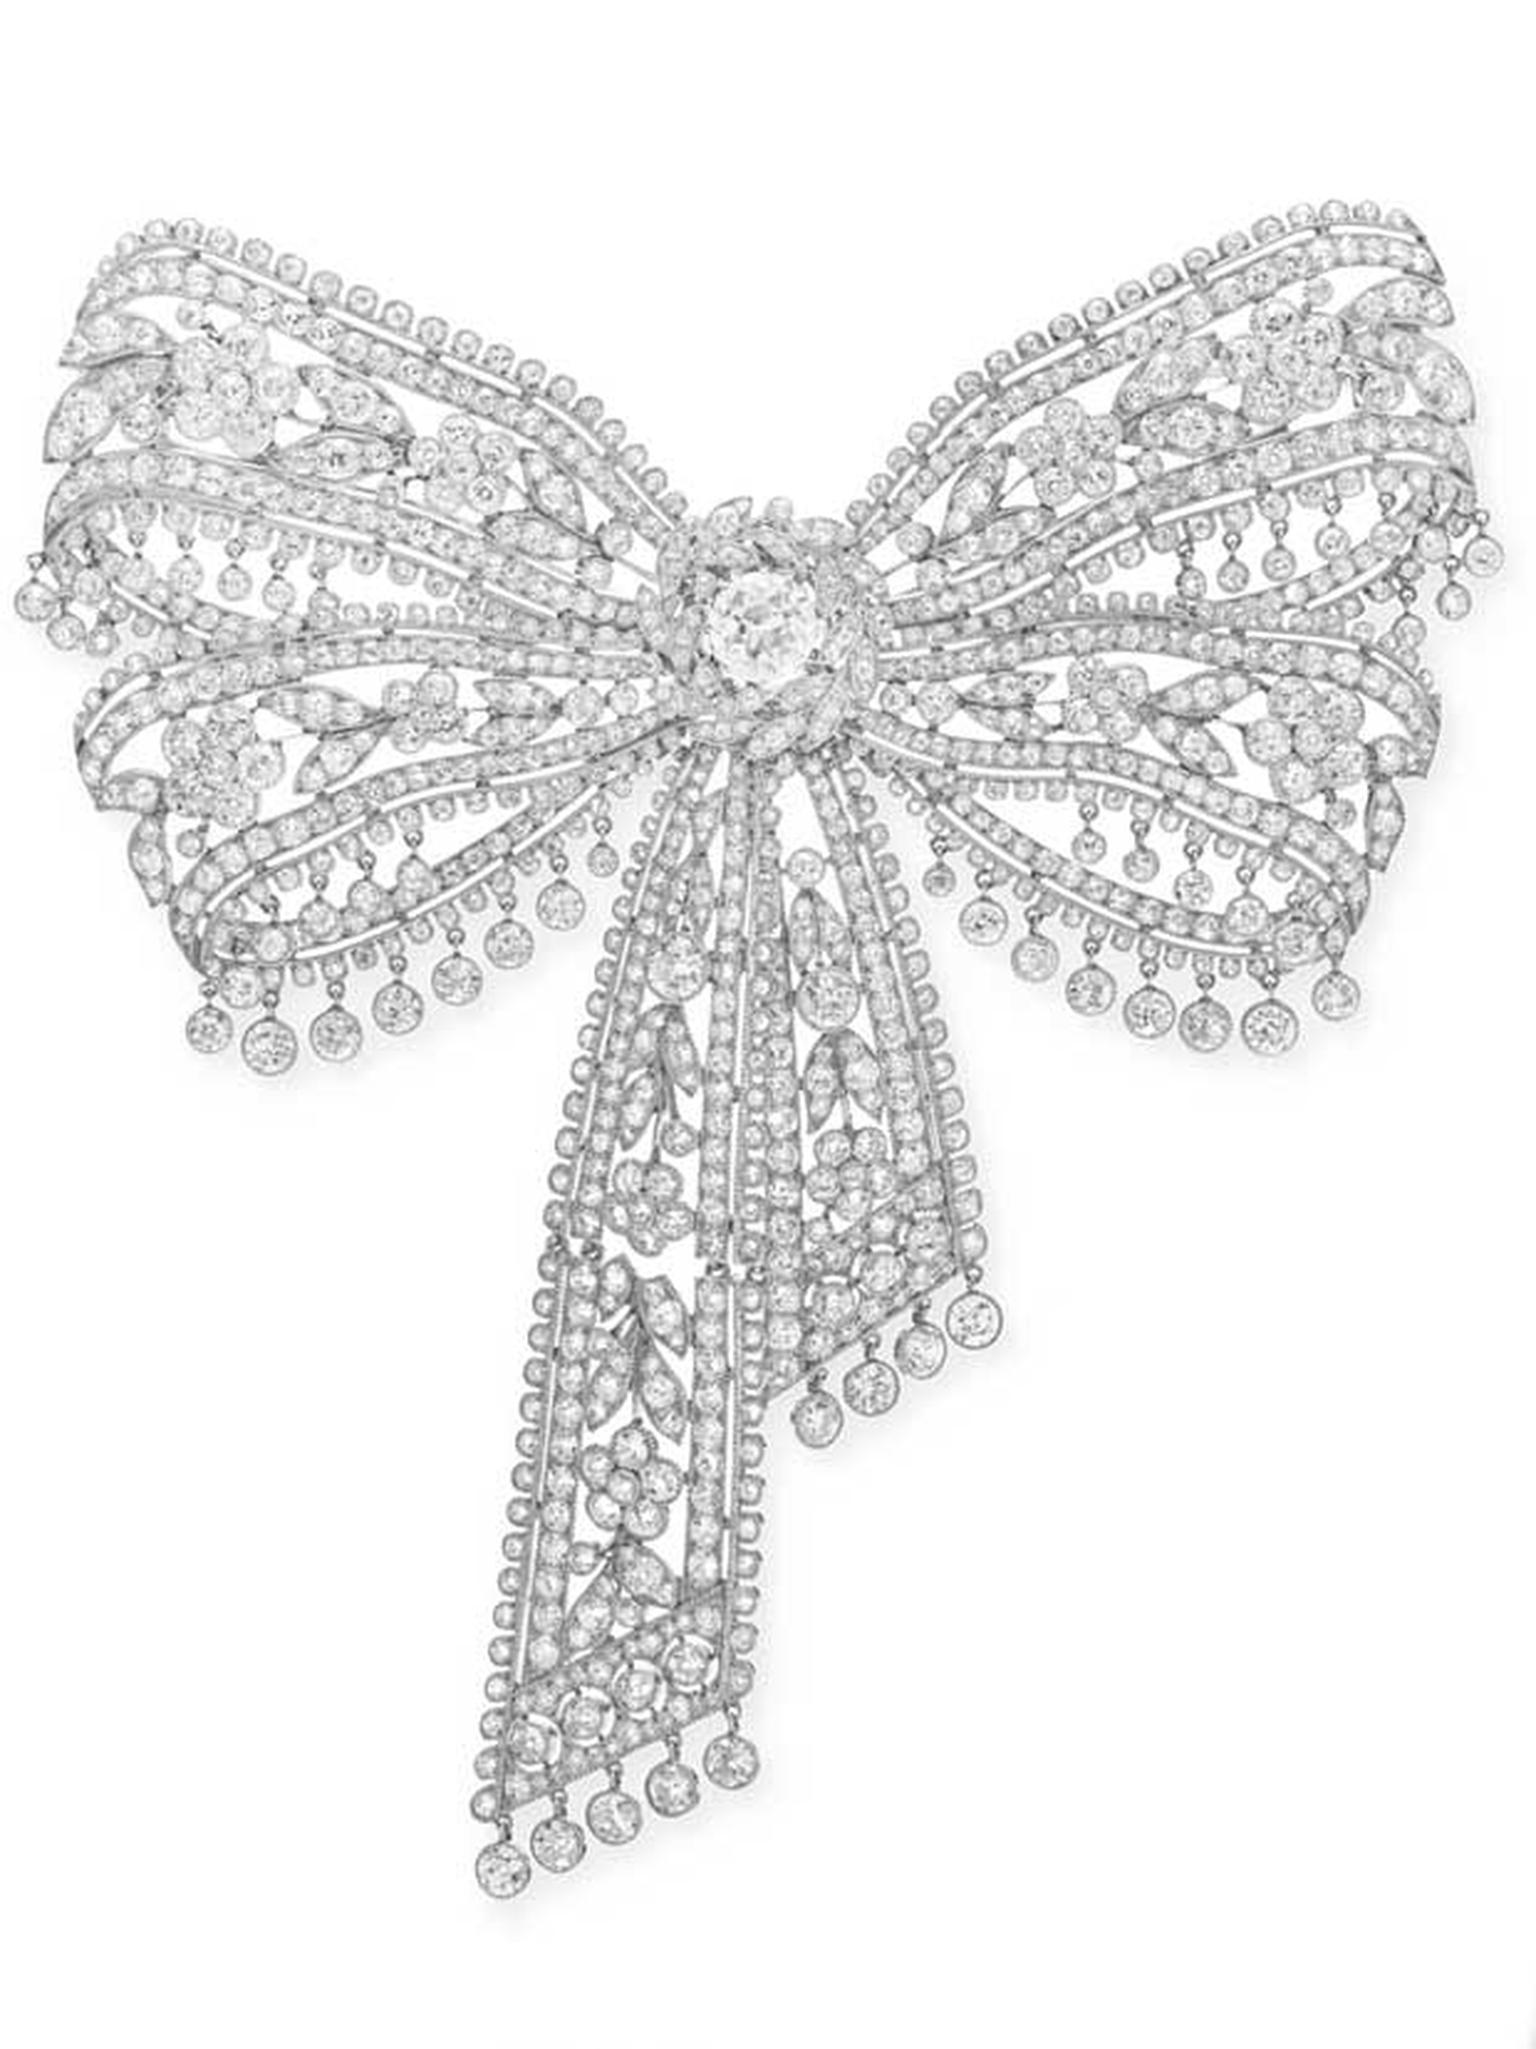 Belle Epoque Cartier diamond brooch Estimate $300,000 - $ 500,000